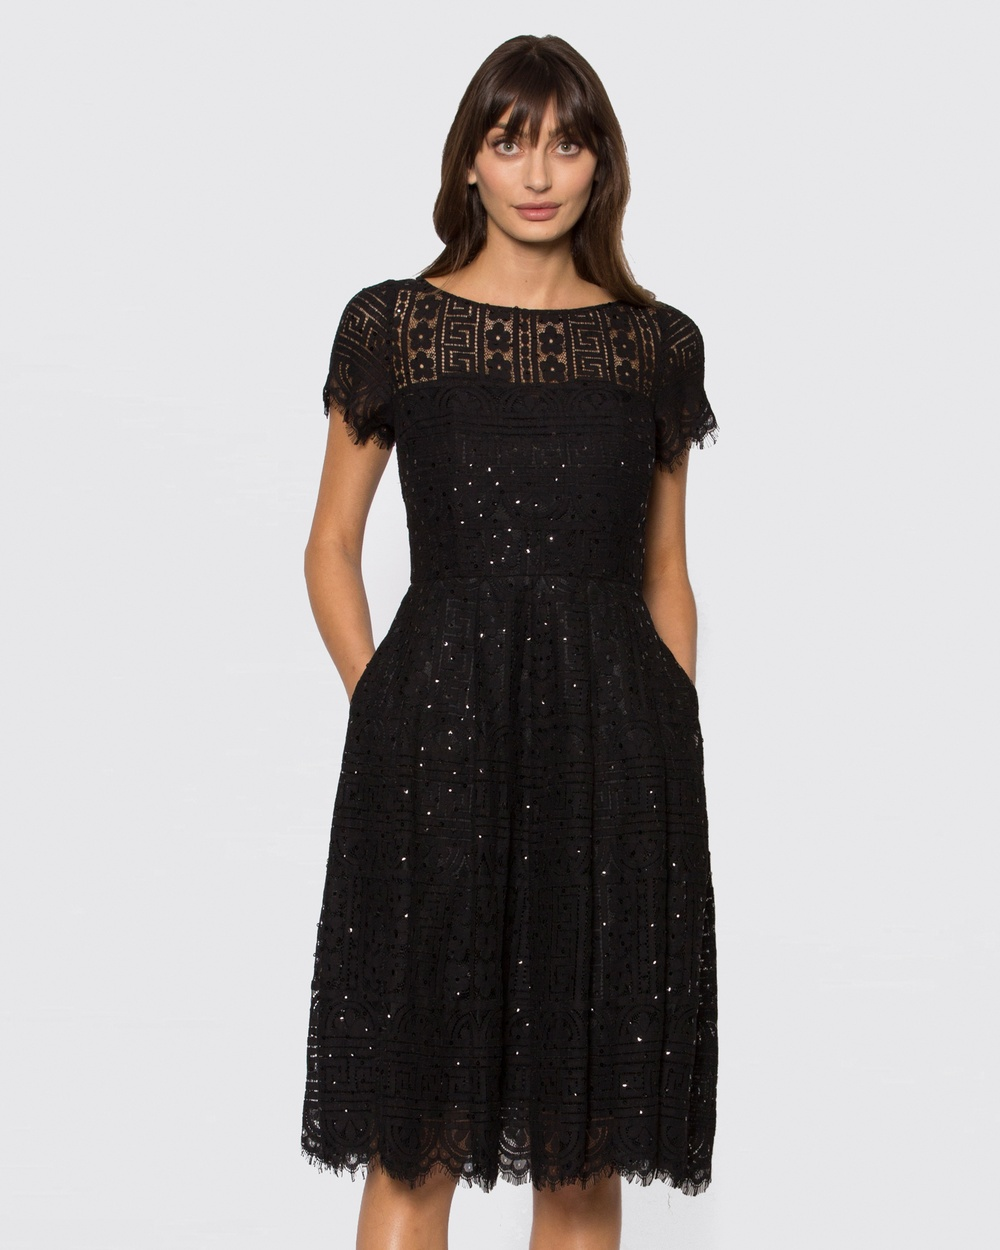 Alannah Hill Black Twice The Charm Dress